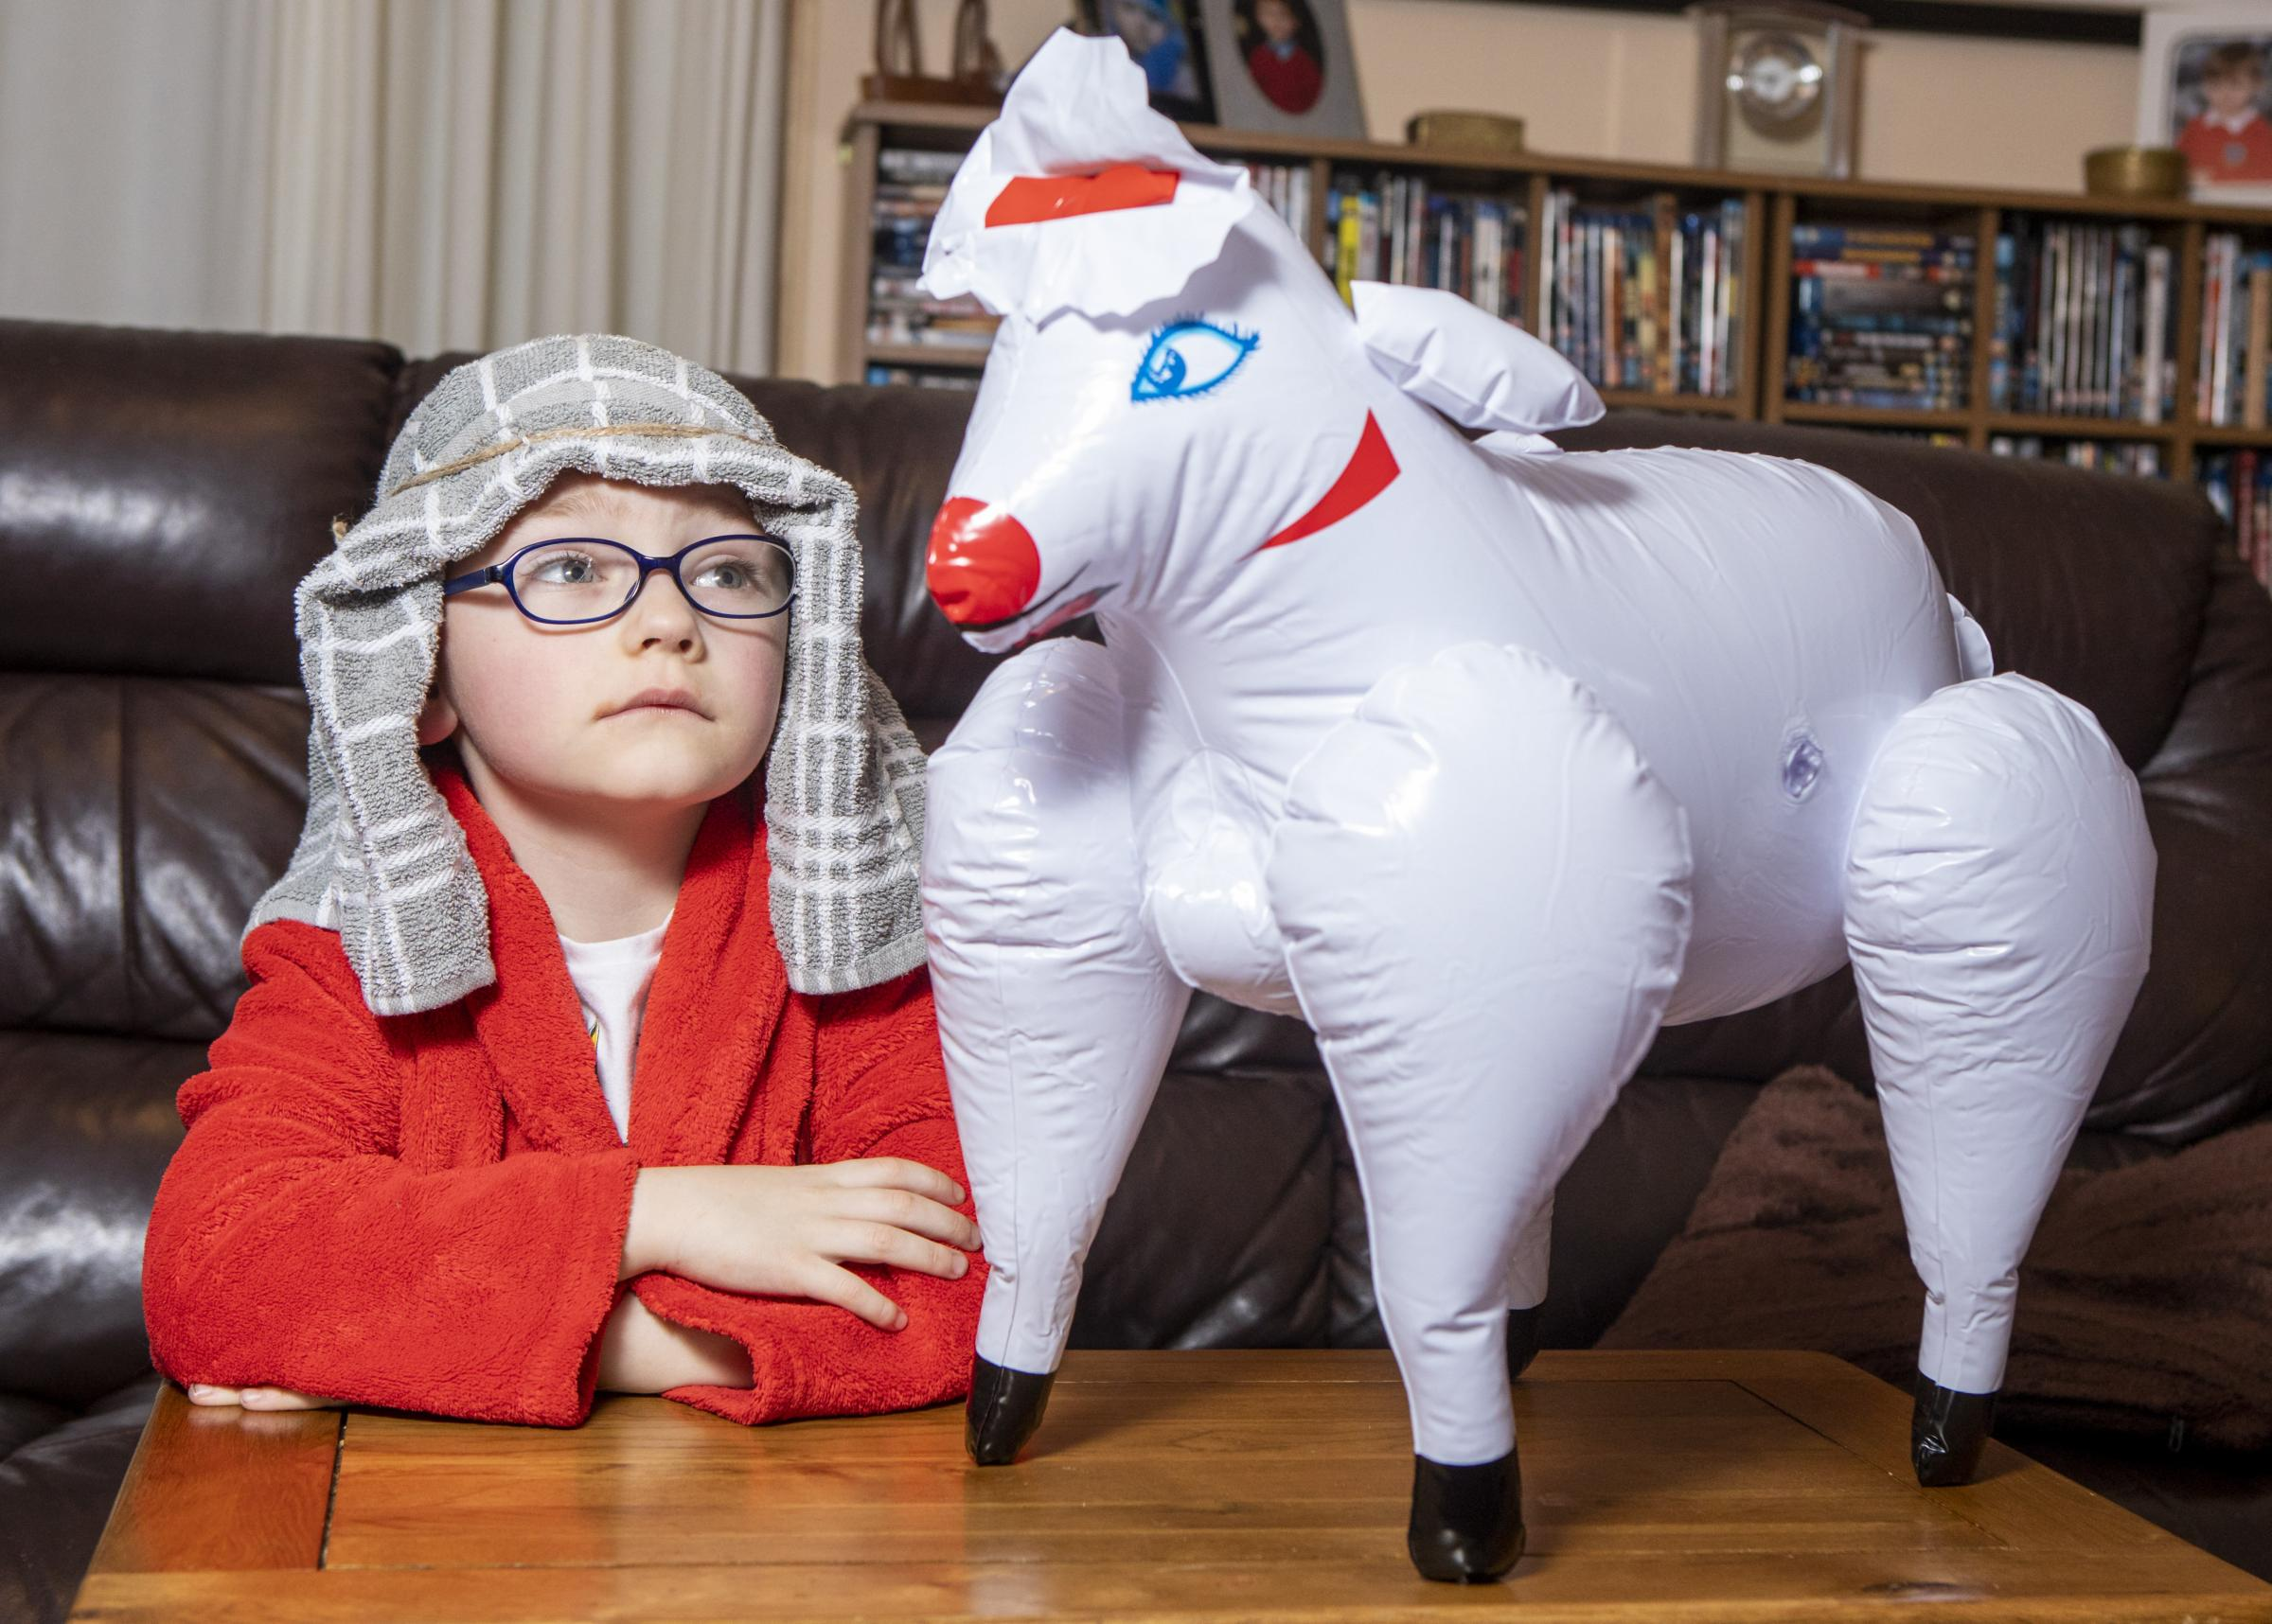 Helen Cox's son Alfie and the inflatable sheep she bought (SWNS)